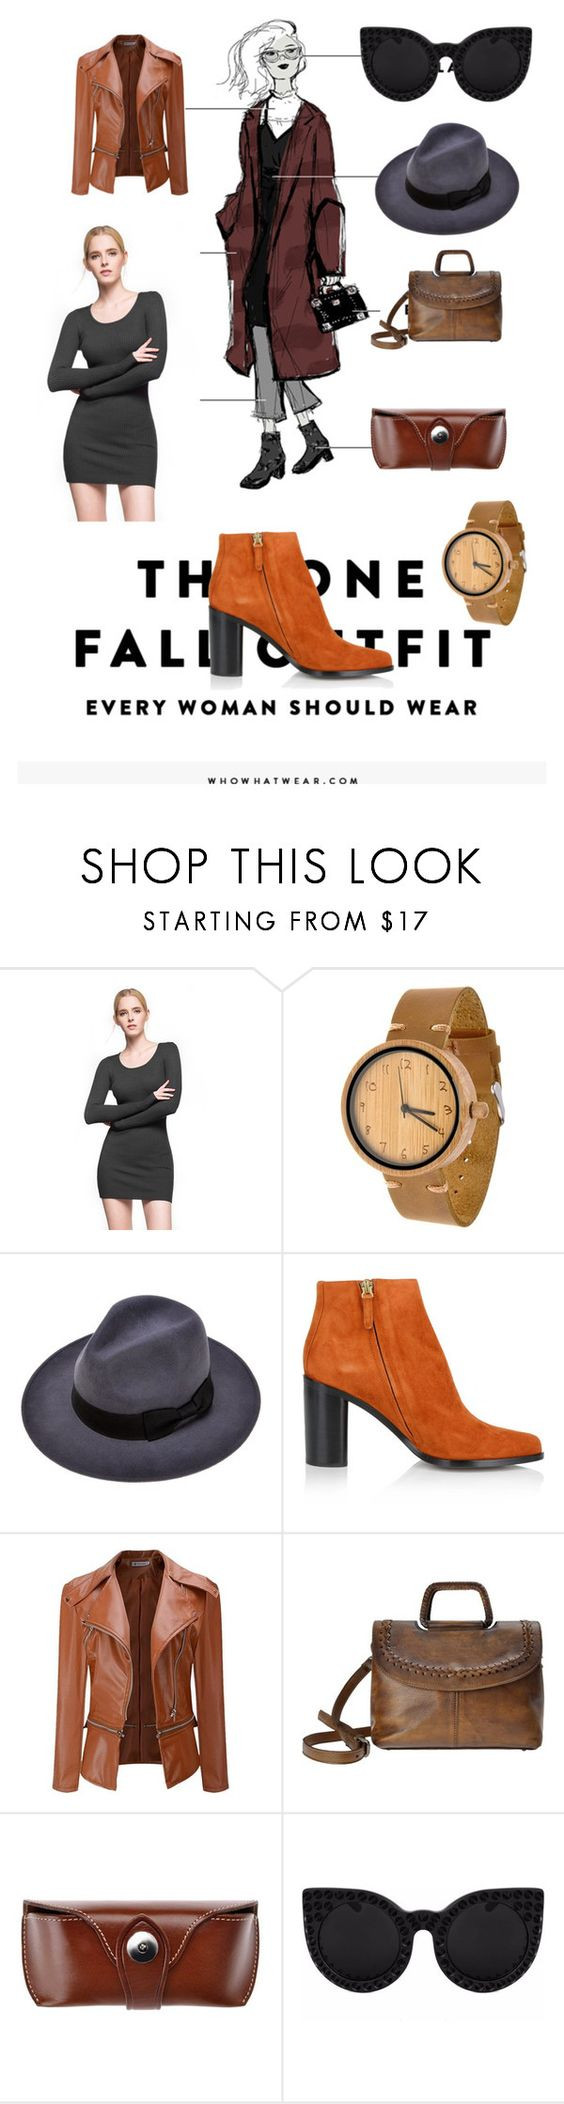 """Fashion Clothing Accessories"" by hallomall on Polyvore featuring Chloé and Delalle"